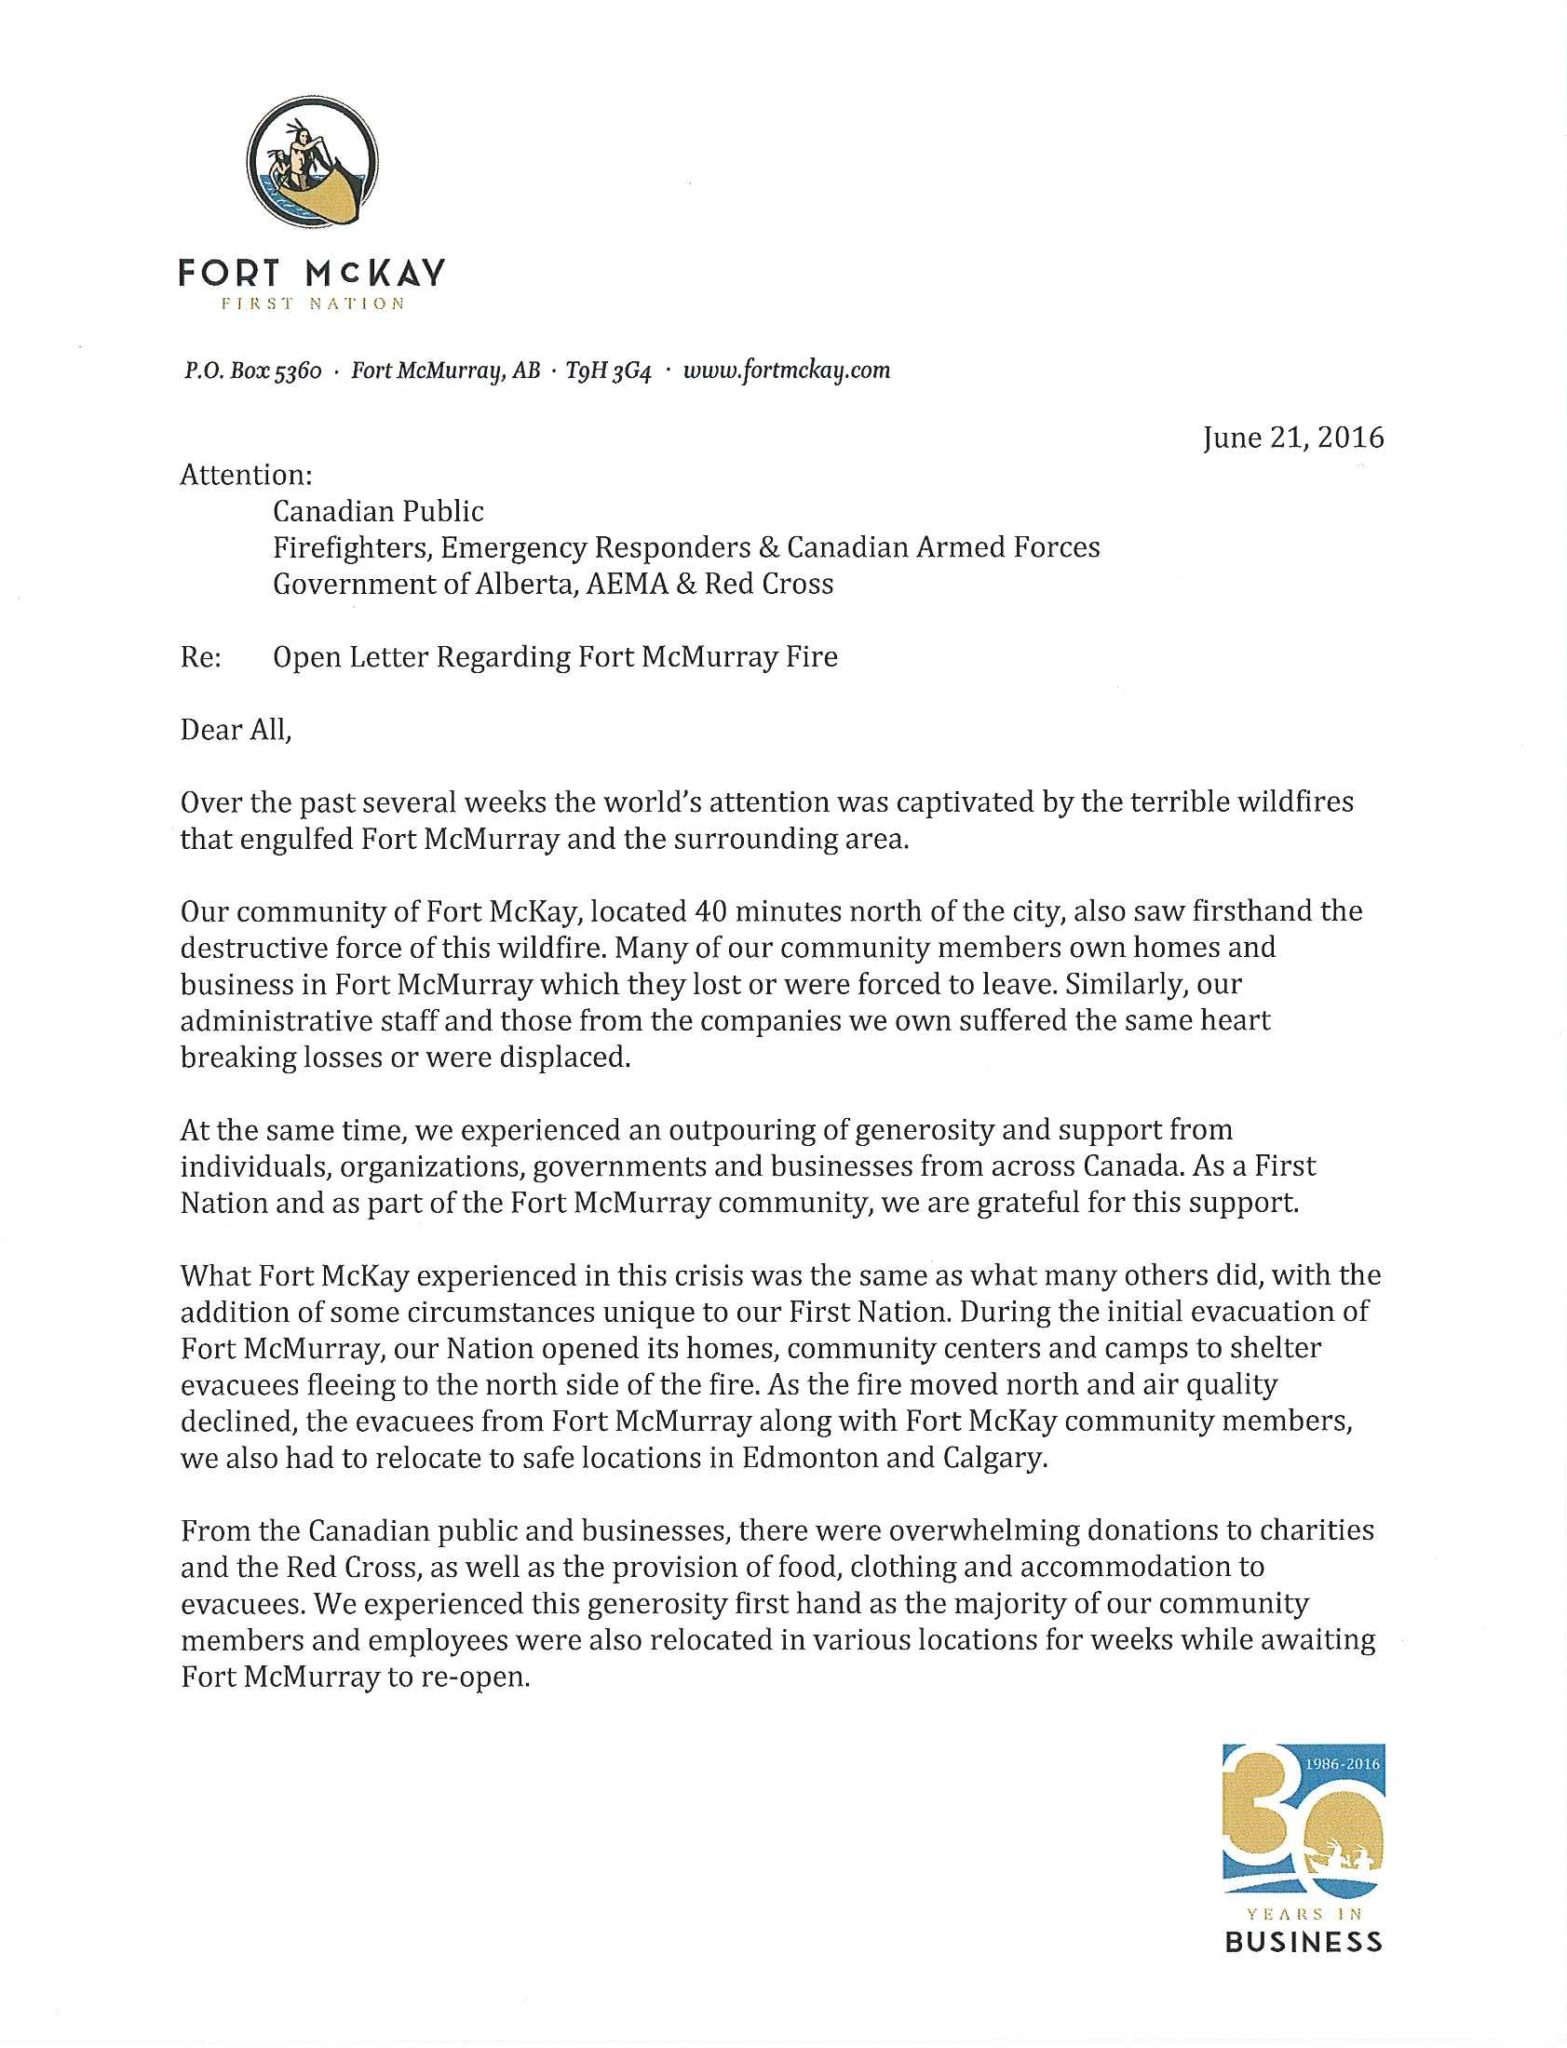 Chief Bouchier - Fort McMurray Fire - Open Letter to Public (a)